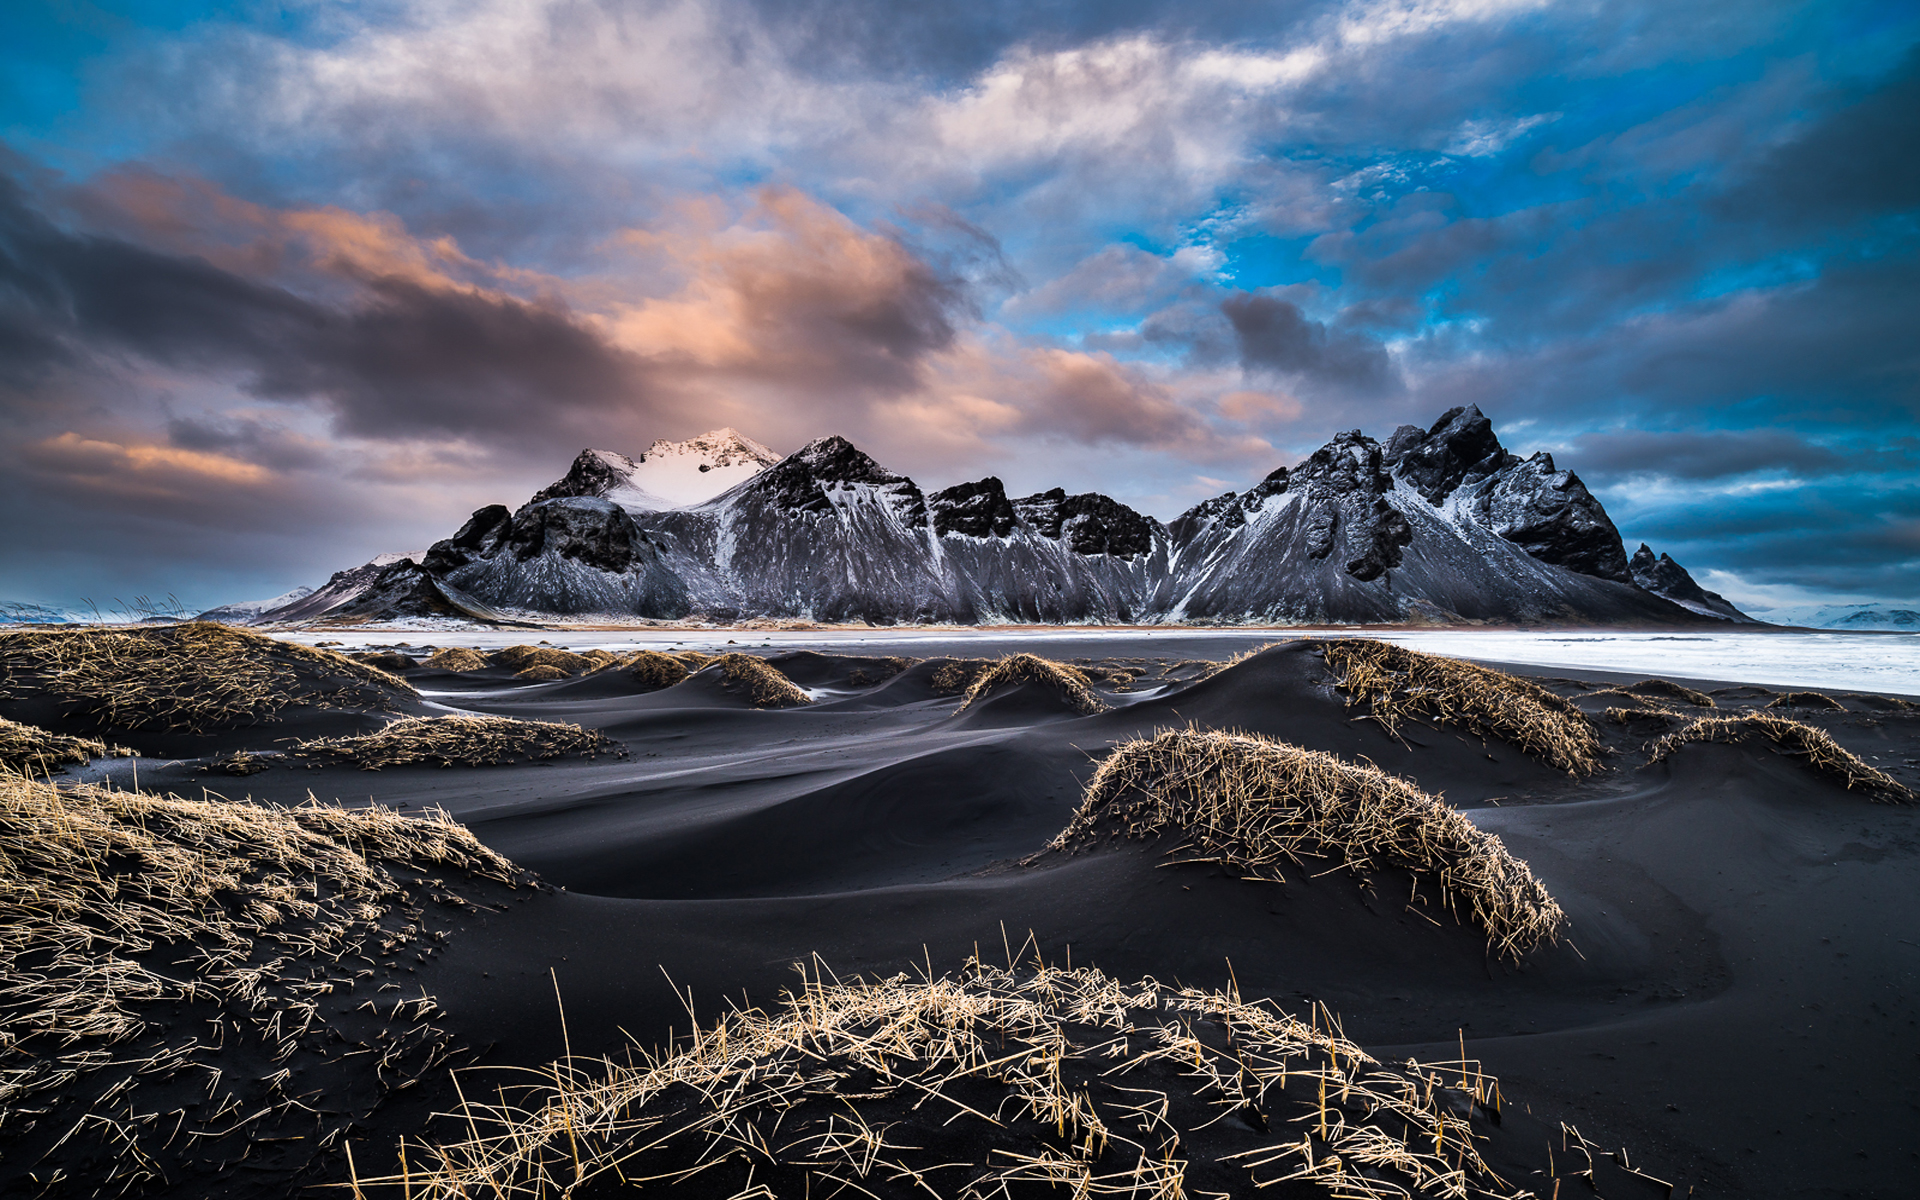 Iphone X Frame Wallpaper Vestrahorn Iceland Winter Landscape Snowy Mountains Coast